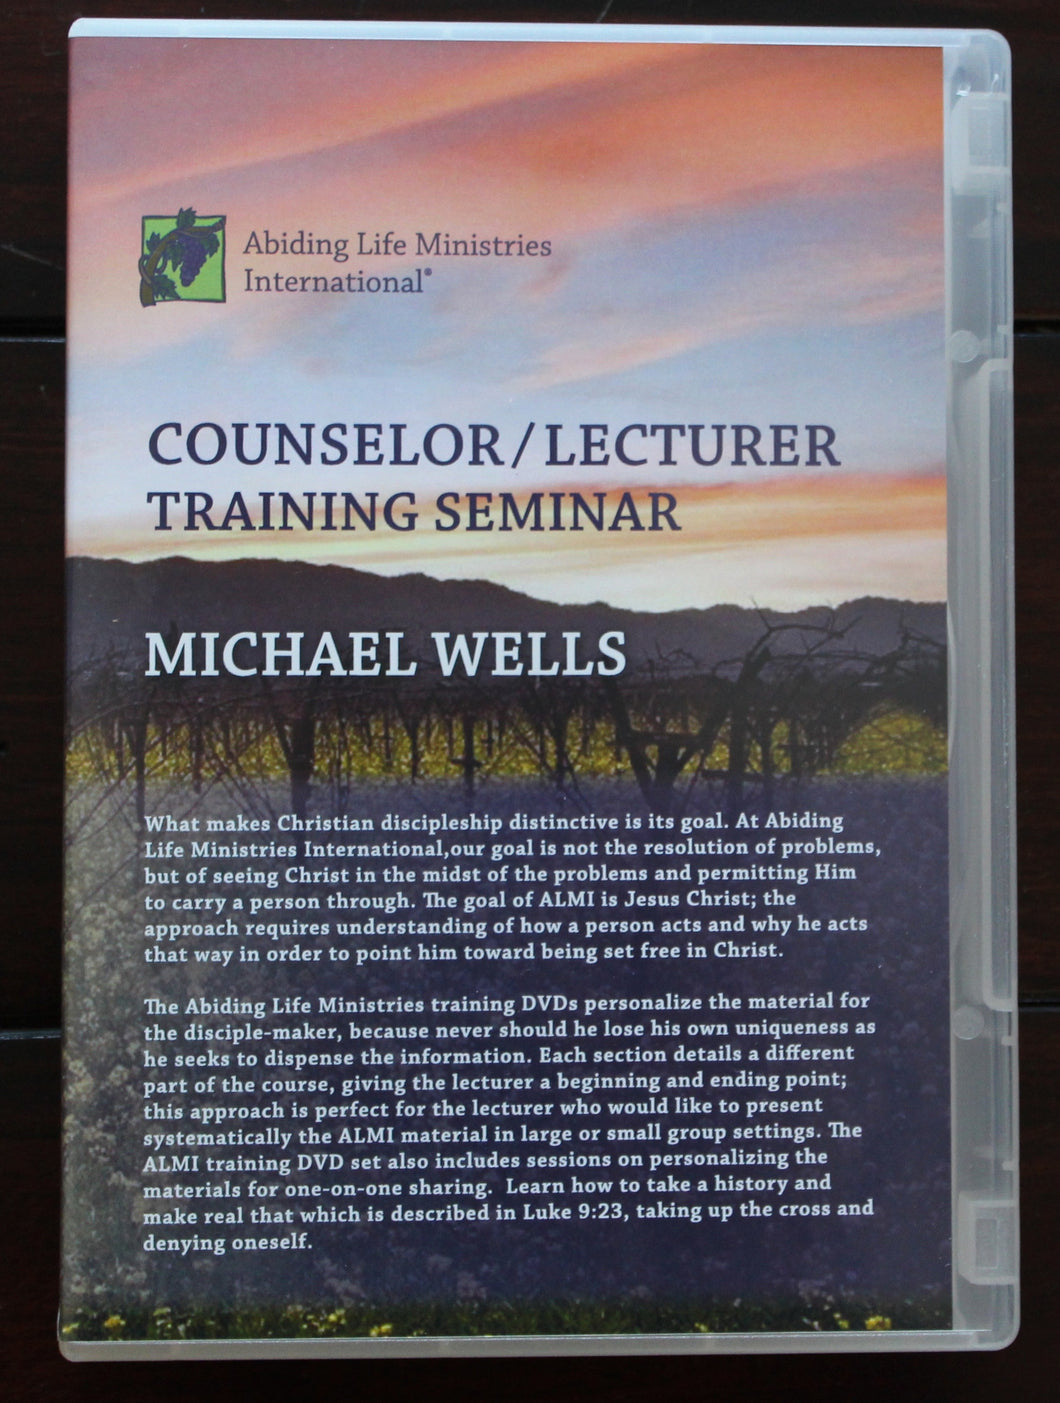 Counselor/Lecturer Training Seminar DVD